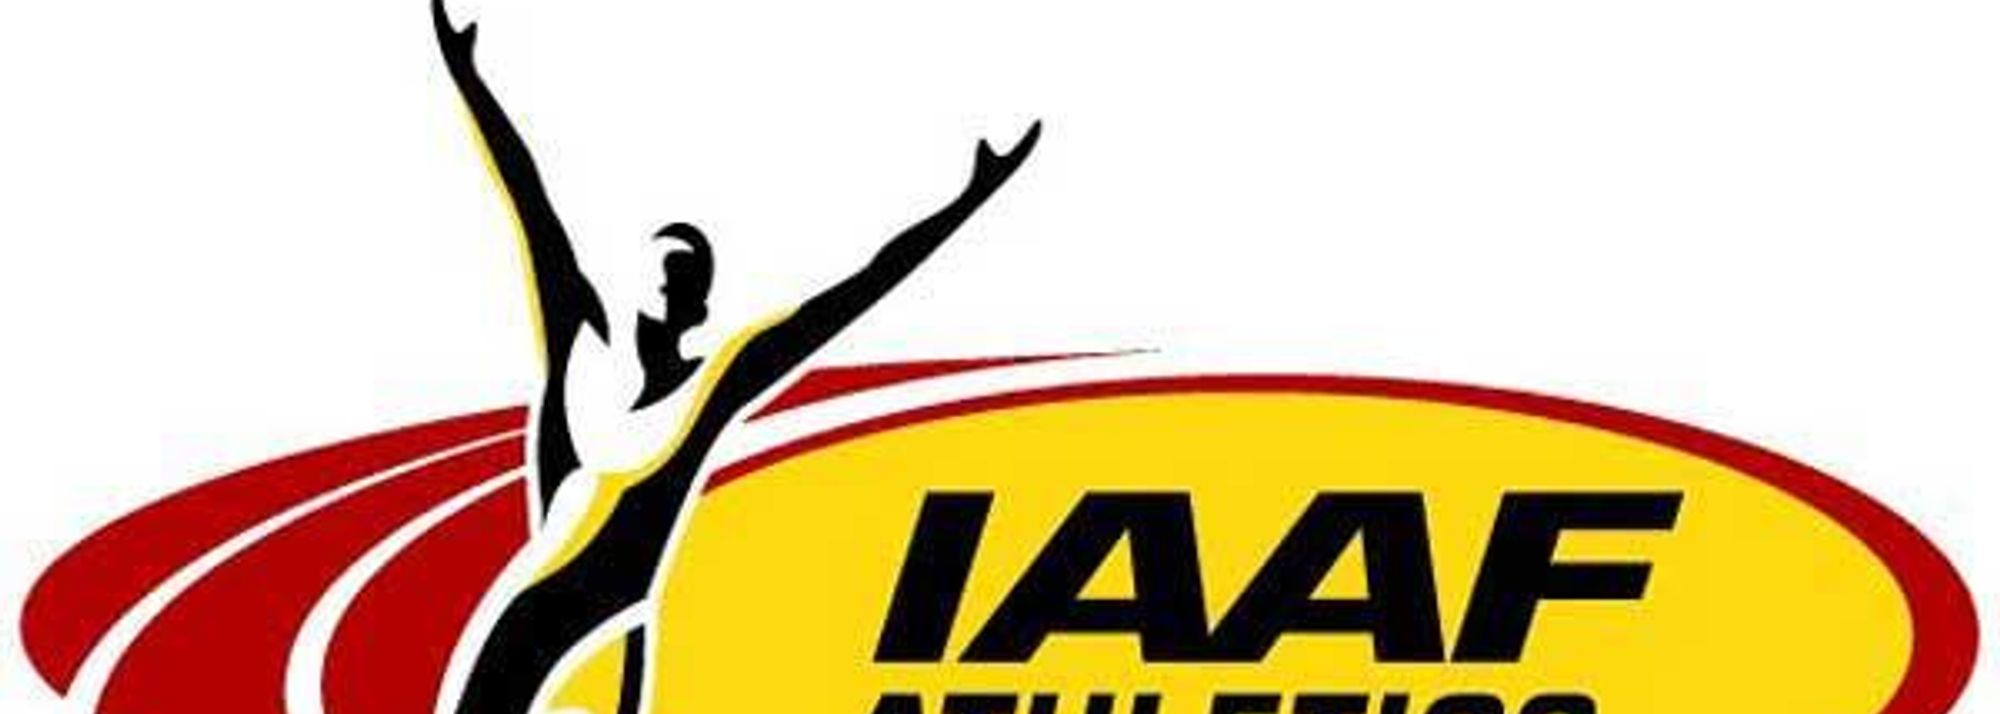 The IAAF is pleased to confirm that the 11th IAAF World Championships in Athletics, Osaka 2007, saw the implementation of the largest ever anti-doping programme at an athletics event.